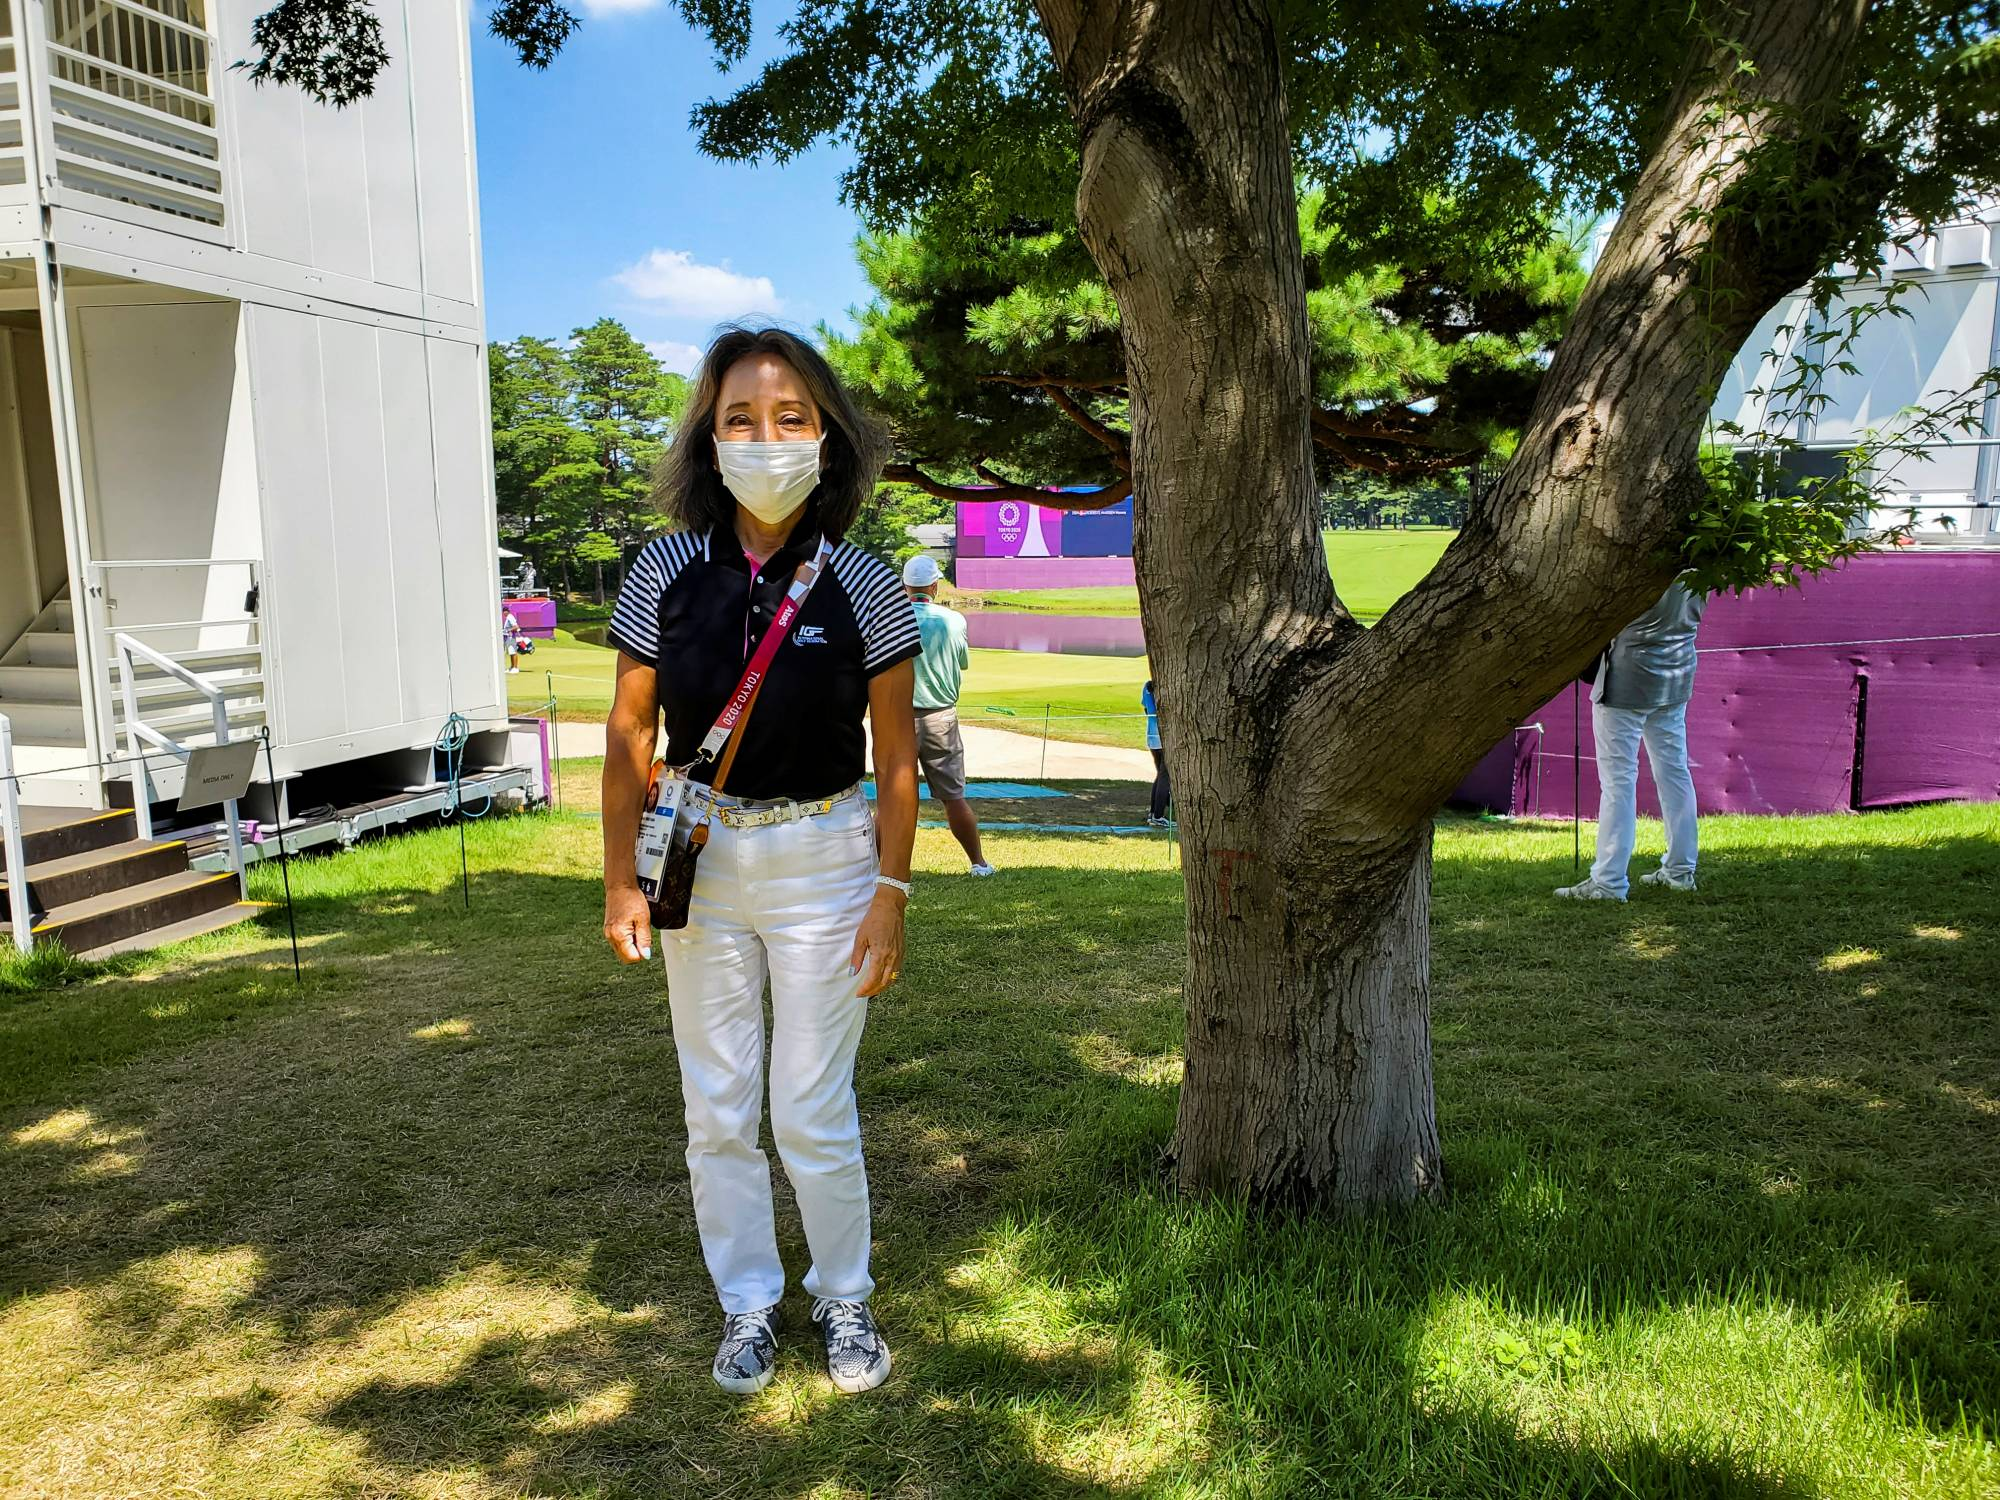 Nobuko Hirayama, is one of just a dozen women among the 1,200 full members at the Kasumigaseki Country Club just outside Tokyo, the venue for men and women's golf at this year's Games. | REUTERS